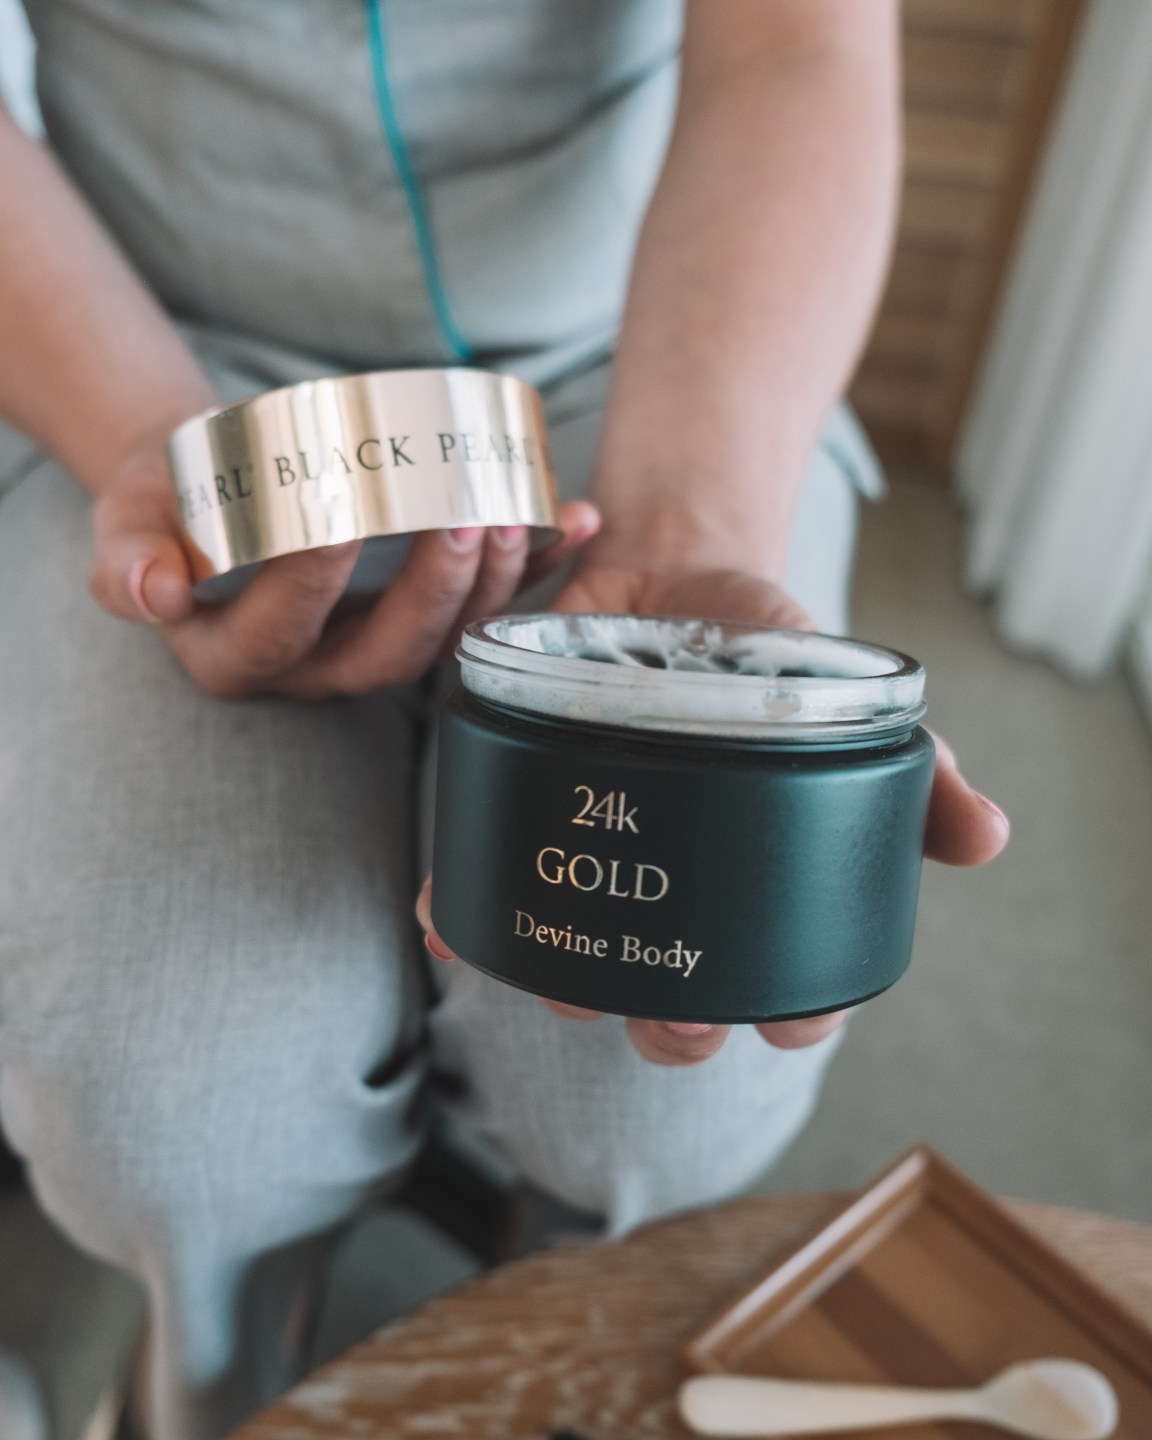 black pearl gold body butter treatment